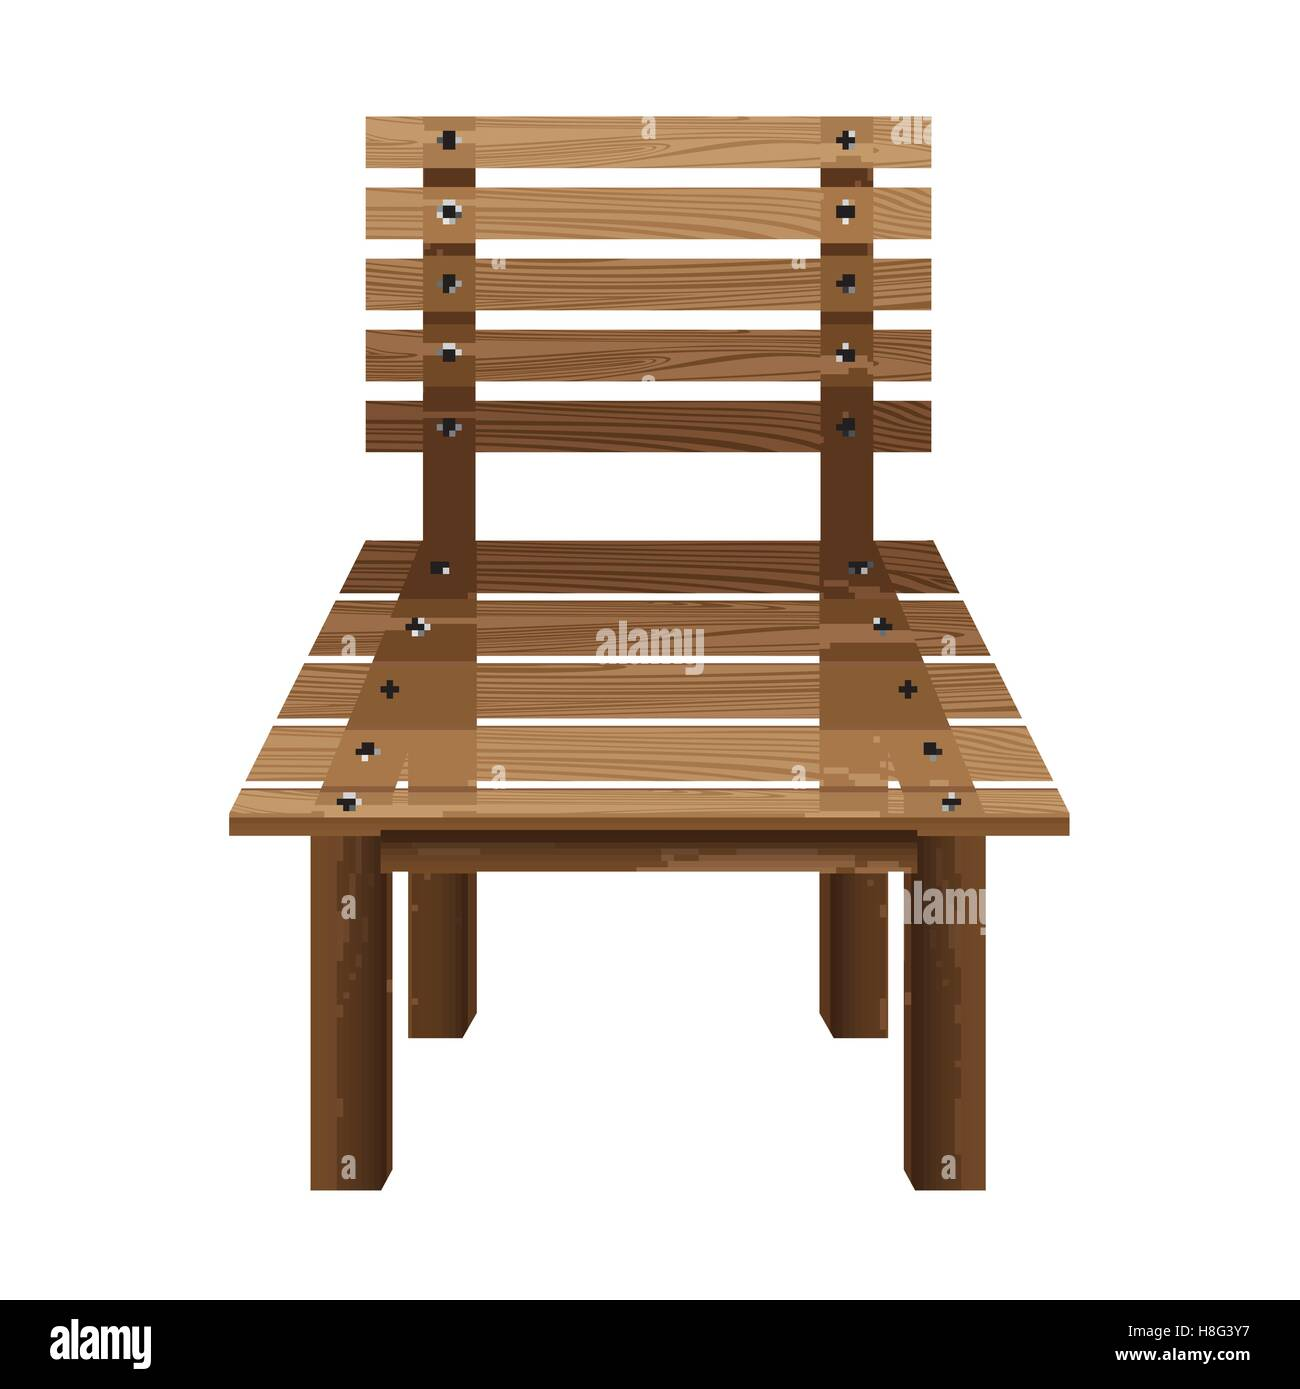 chair wooden vector stool isolated illustration object vintage retro furniture design decoration leg modern old  sc 1 st  Alamy & chair wooden vector stool isolated illustration object Stock ...